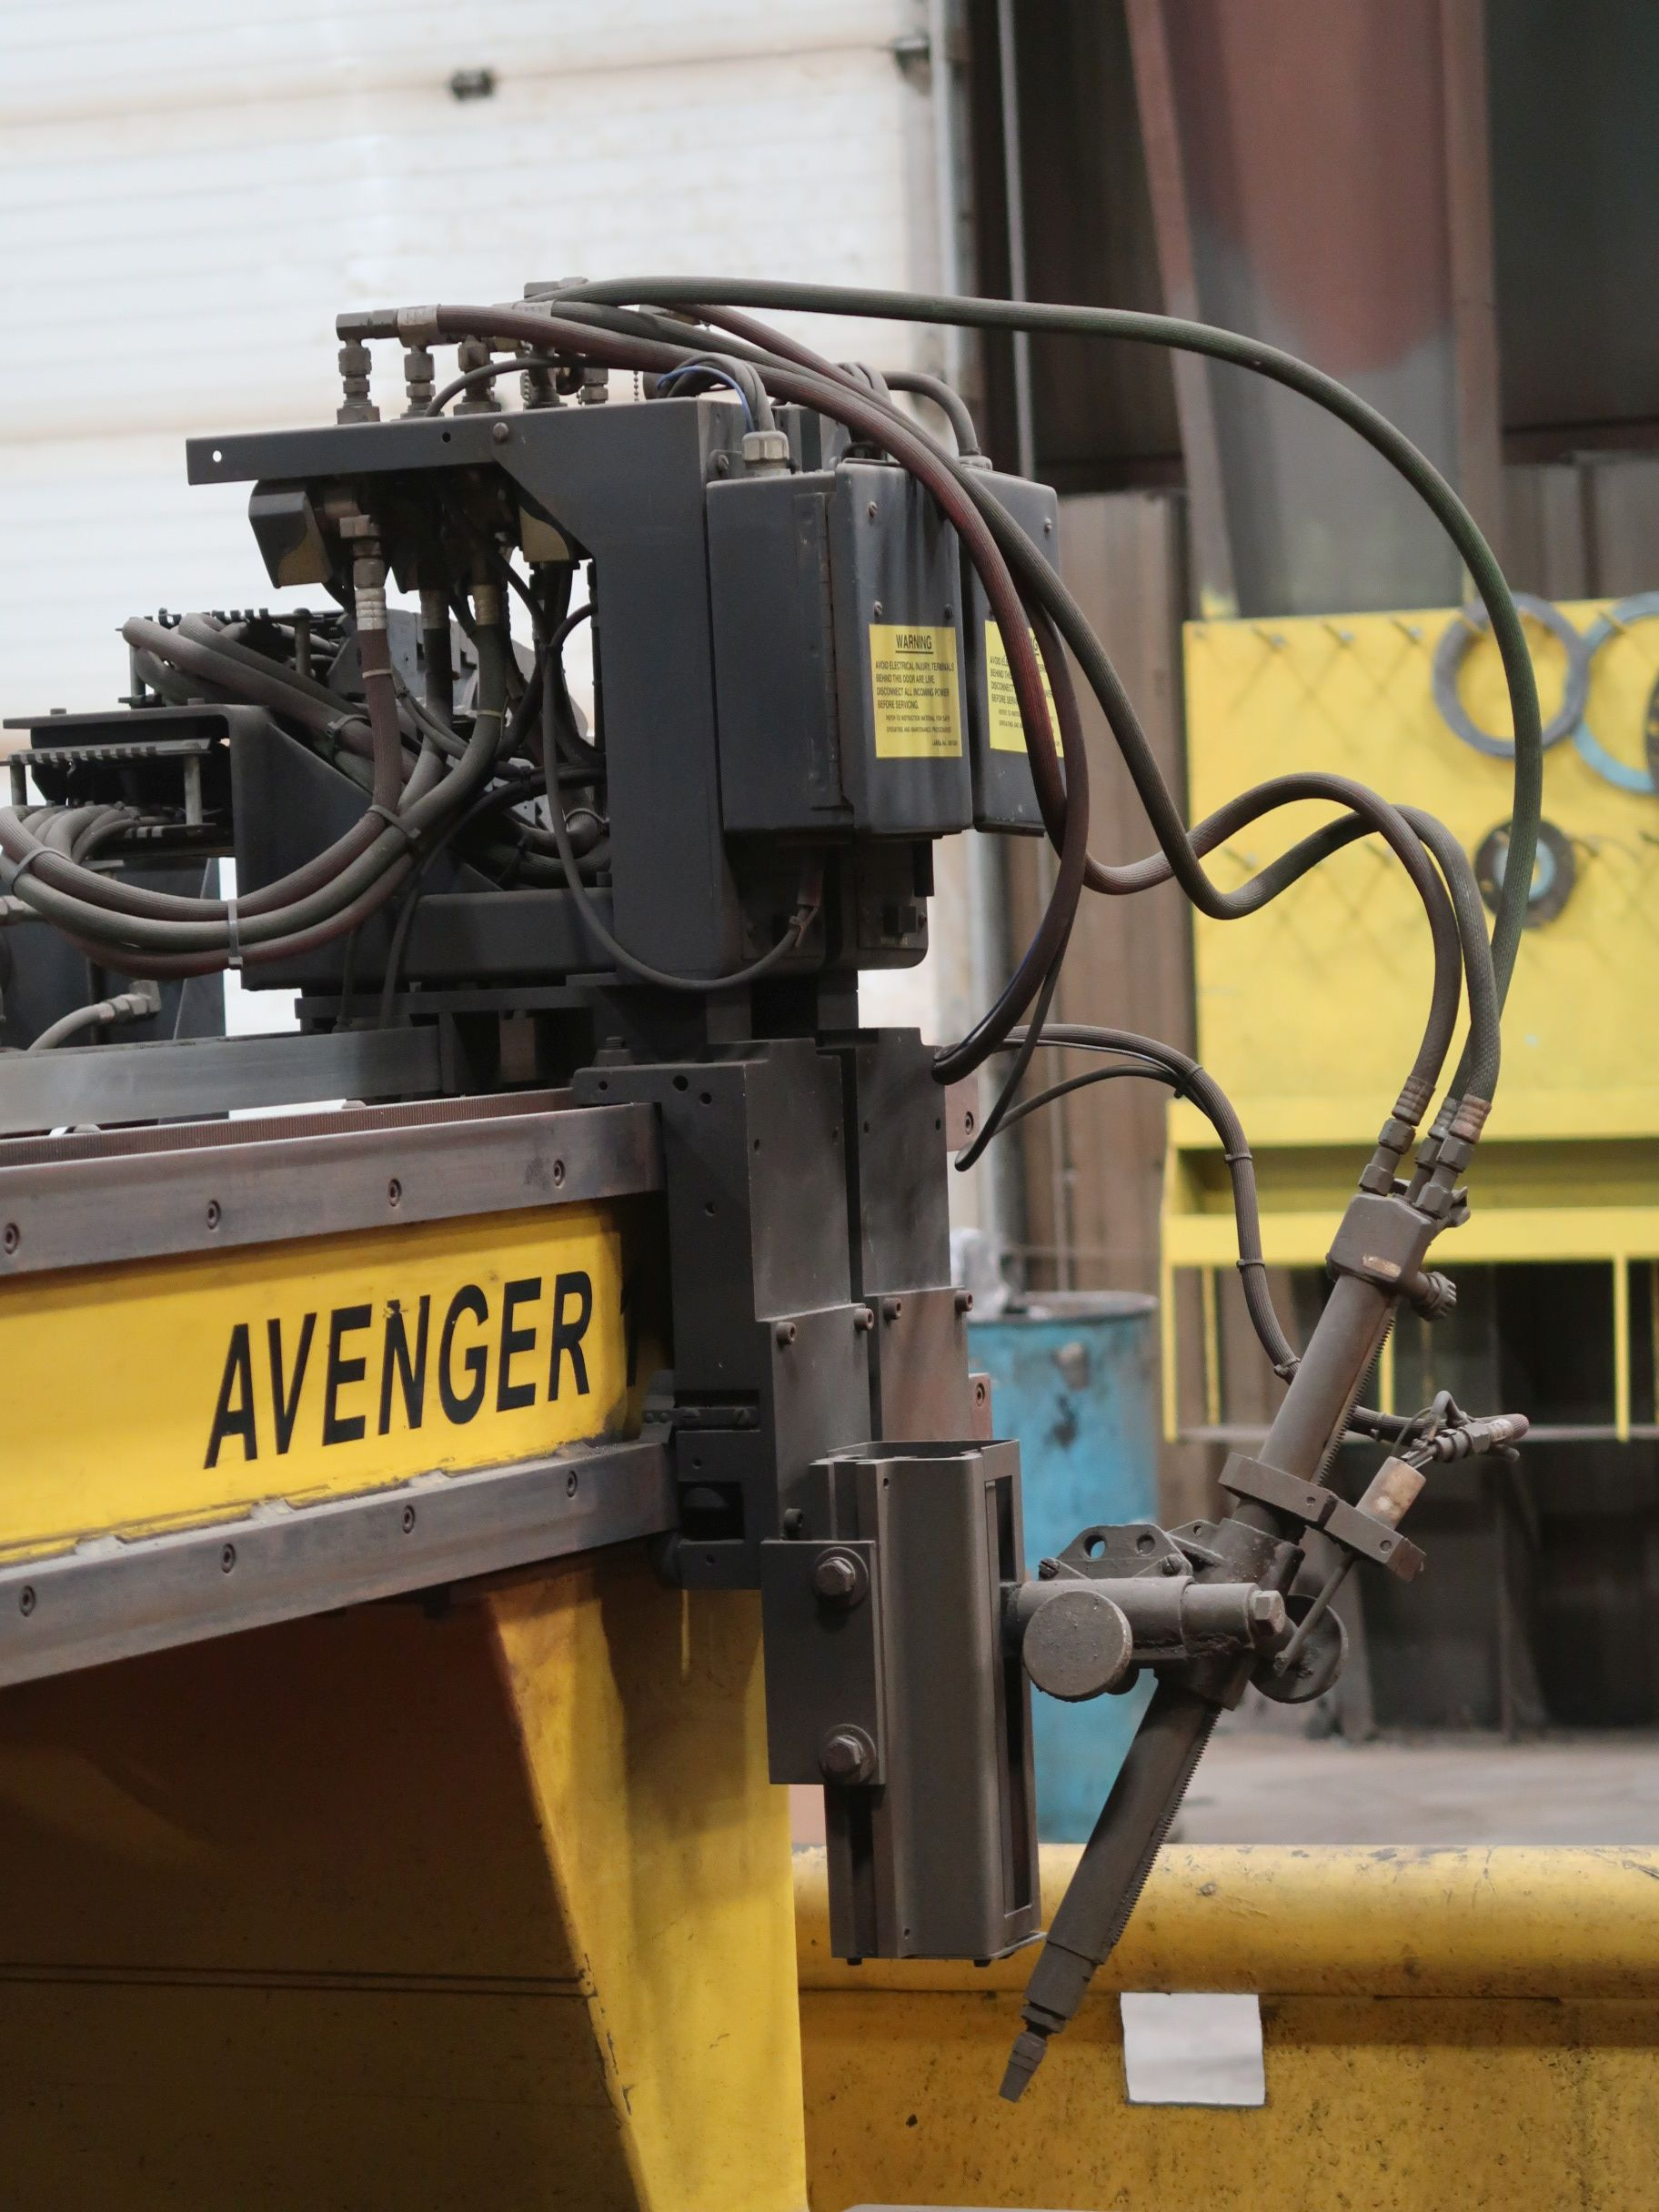 12' X 40' ESAB MODEL AVENGER 1-12 VISION PLASMA TABLE W/ BURNY 10 CONTROL; S/N 0560986386, UPDATED - Image 10 of 23